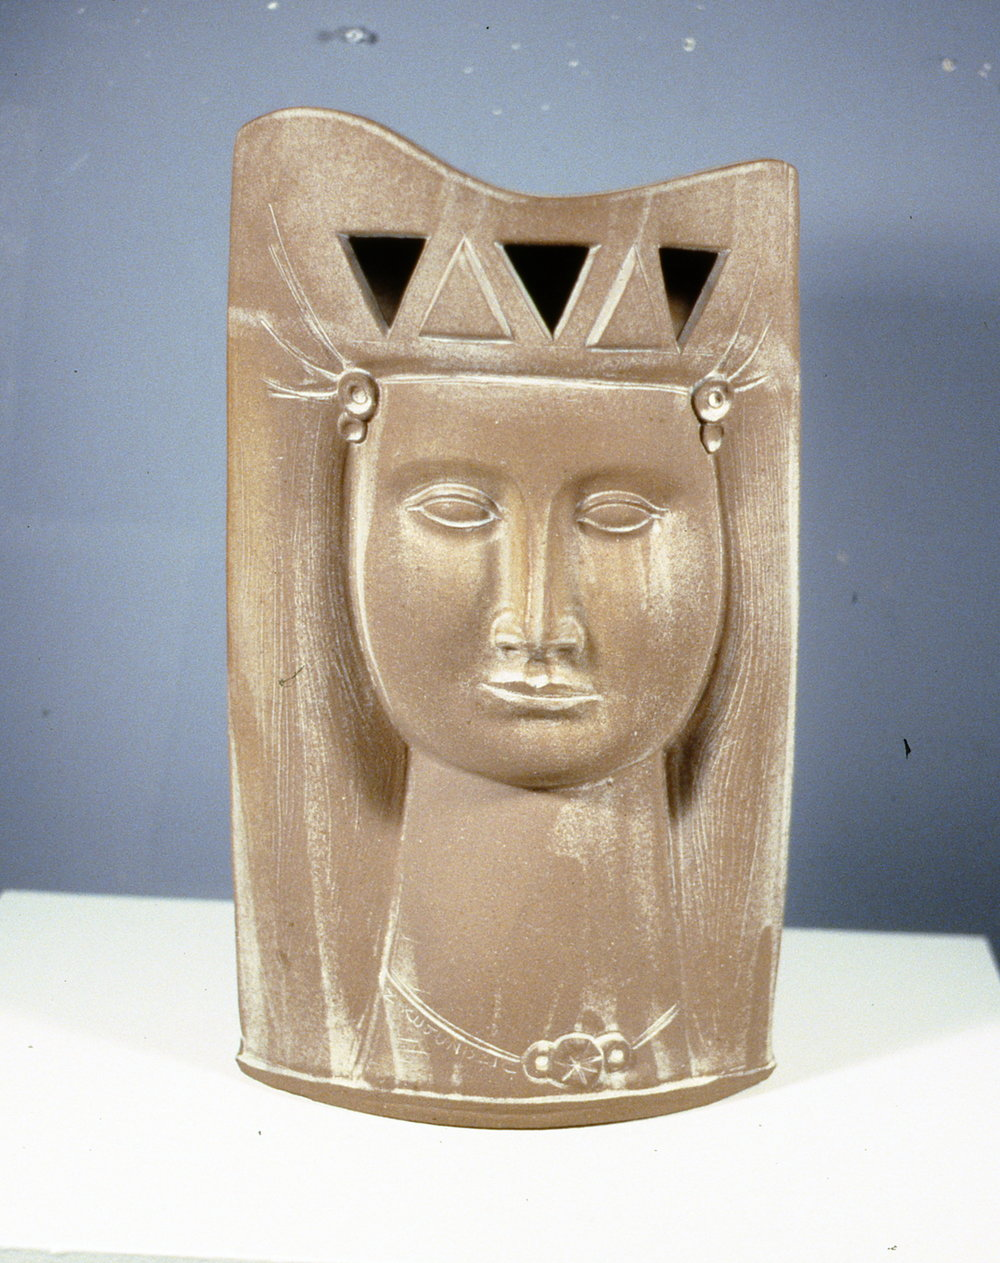 Queen of Sheba (front view), 1995, Zeljko Kujundzic, stoneware sculpture, 48 x 28 cm, 1999.03.01, gift of the estate of June Brock